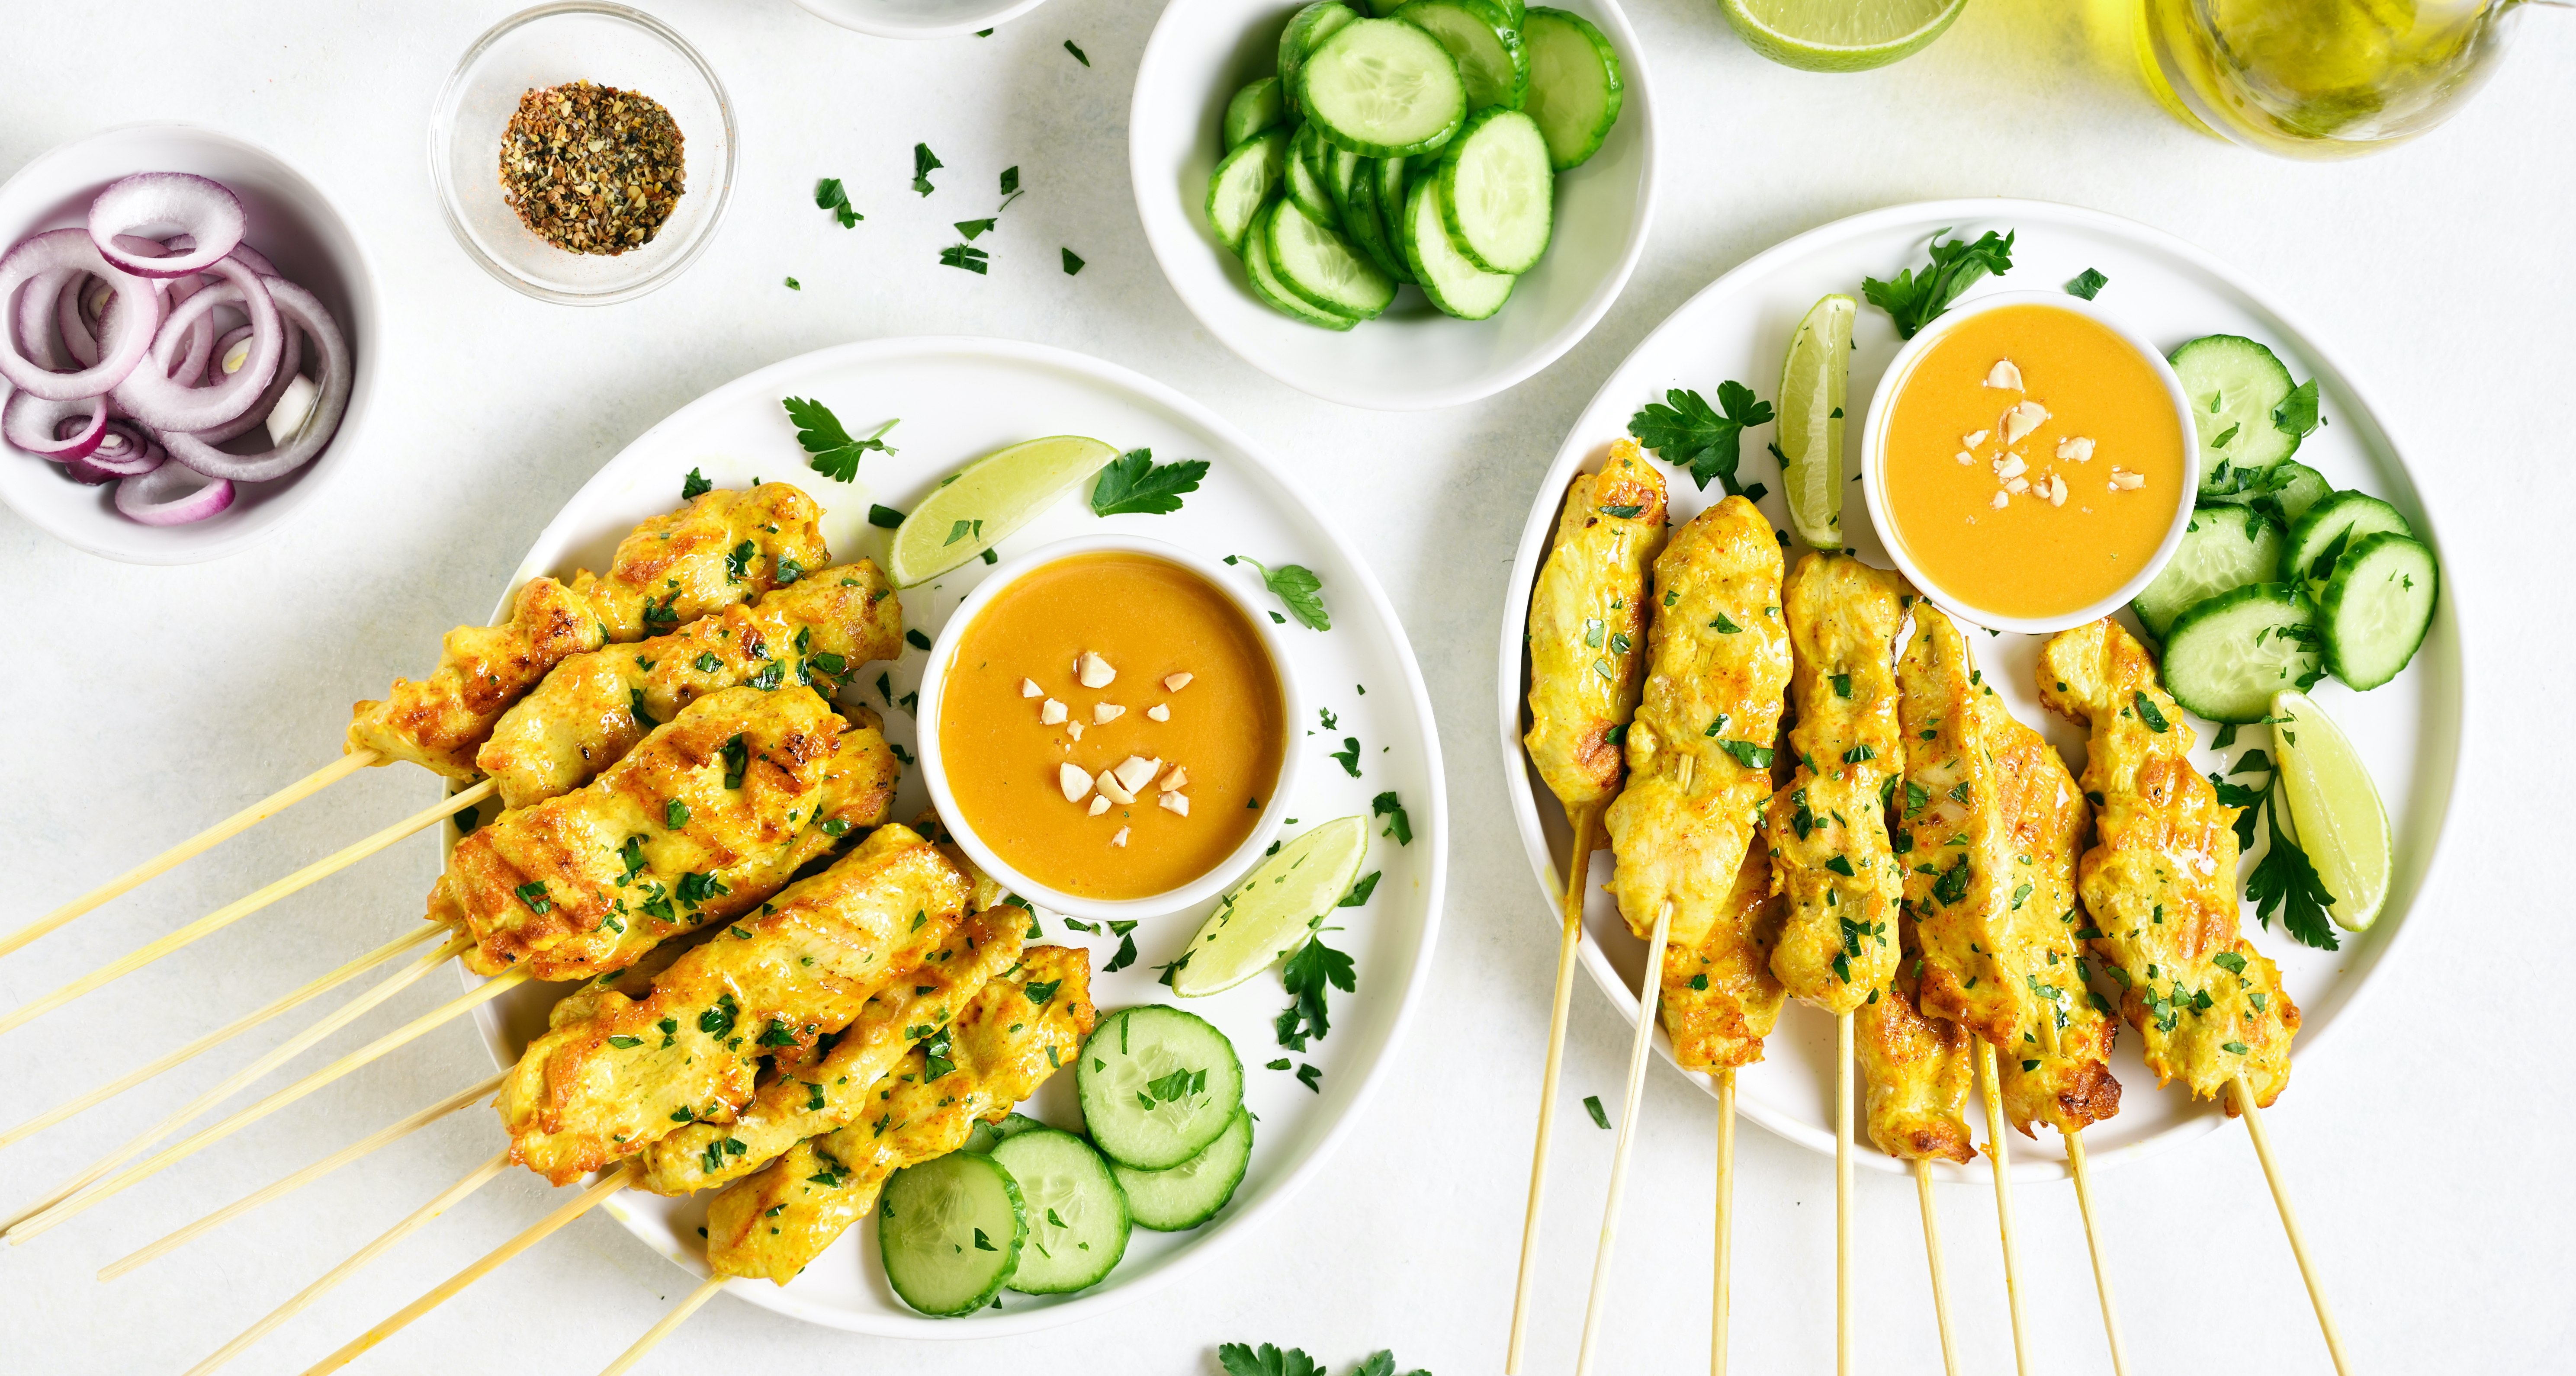 chicken seekers on a white plate with peanut satay sauce in small bowls